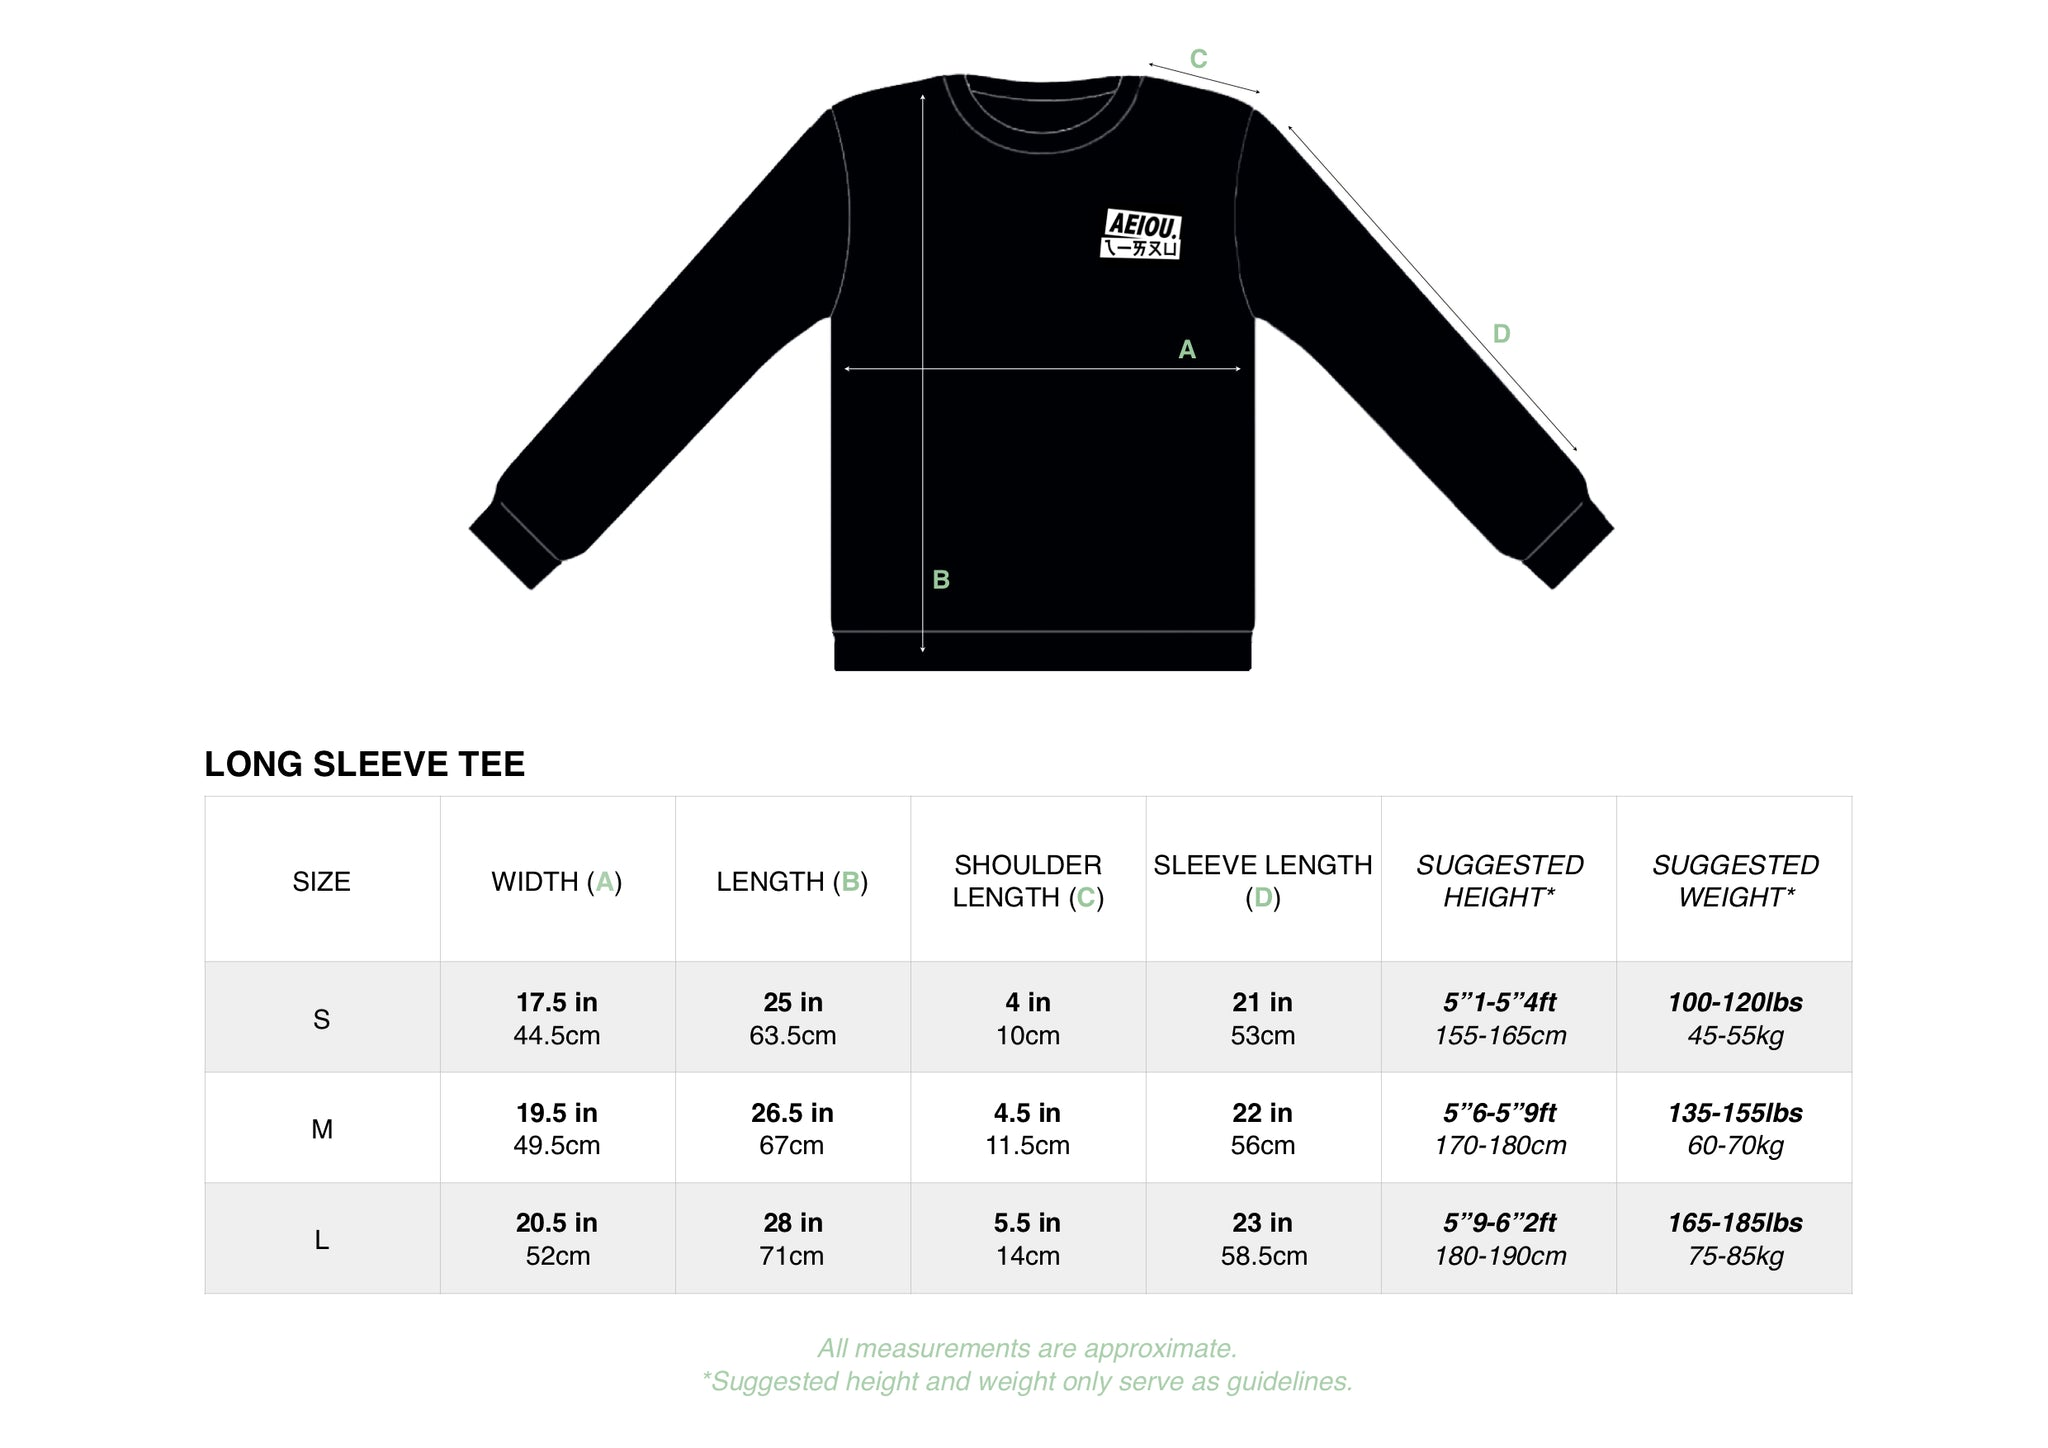 AEIO:U Long Sleeve Sizing Chart